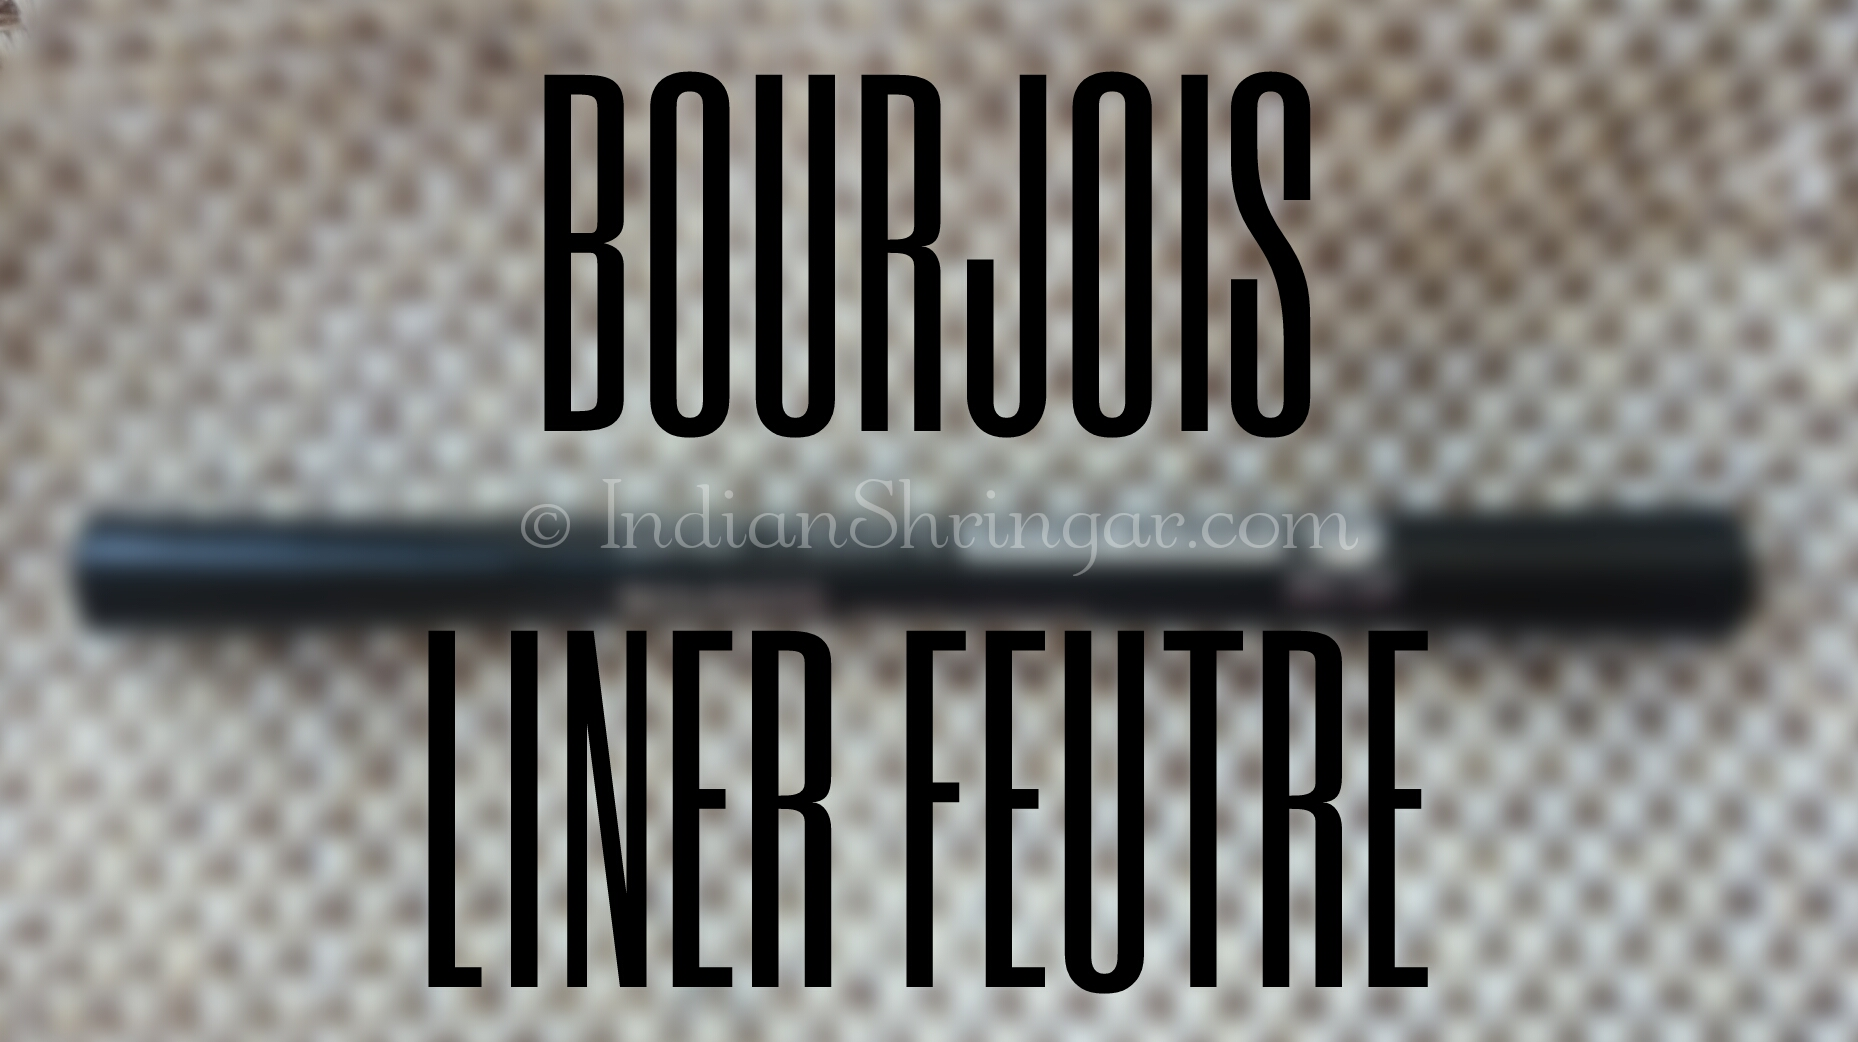 Bourjois Liner Feutre - review, swatch, price